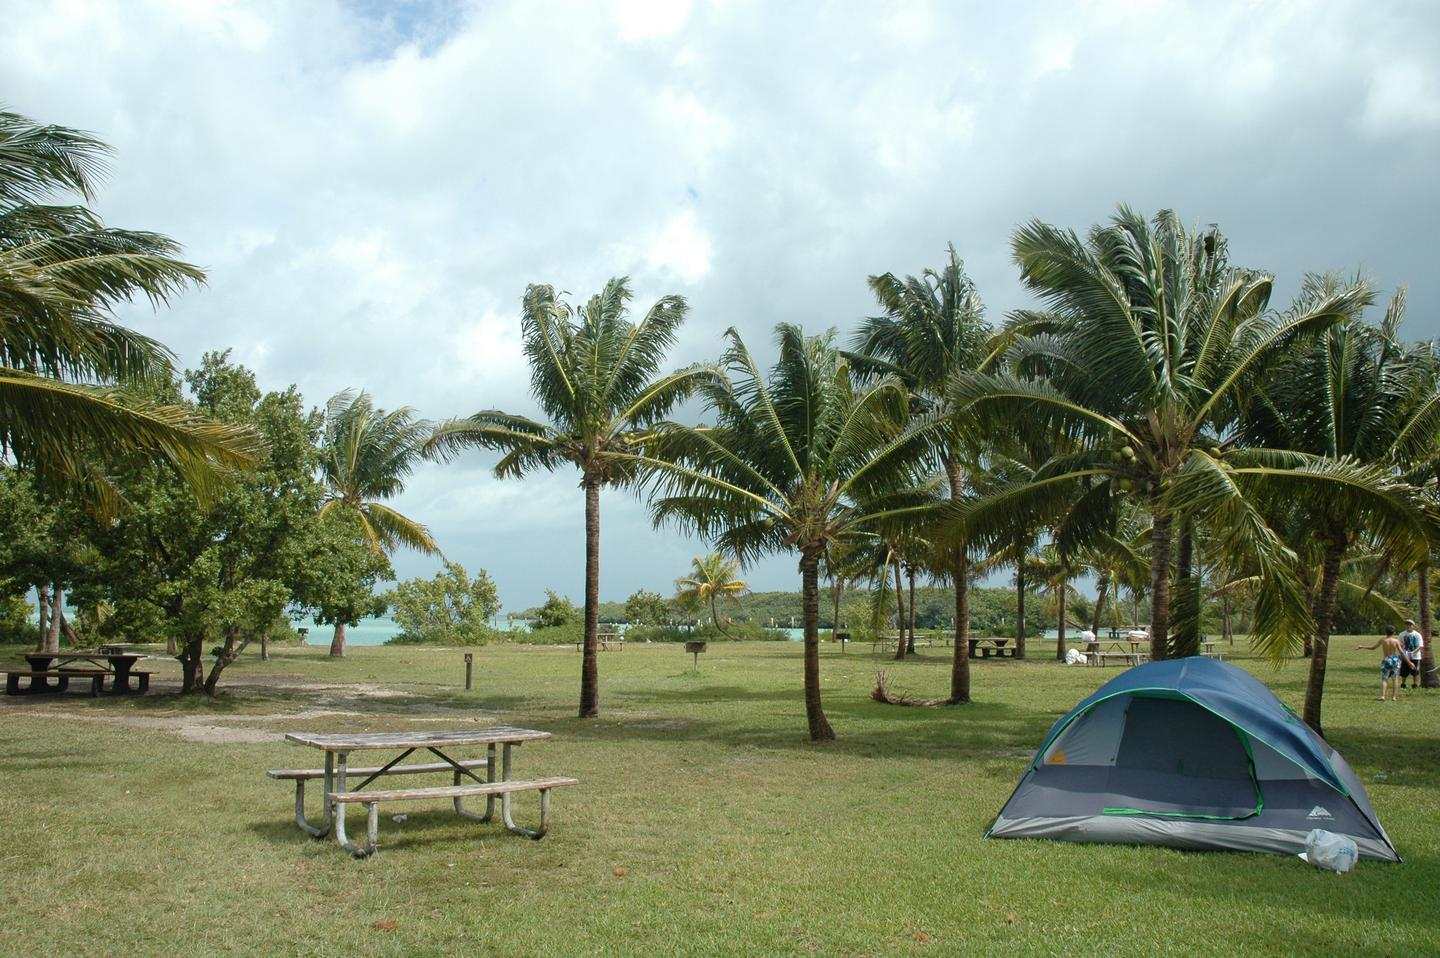 Boca Chita Key campgroundCamping with a view of the Atlantic Ocean on Boca Chita Key